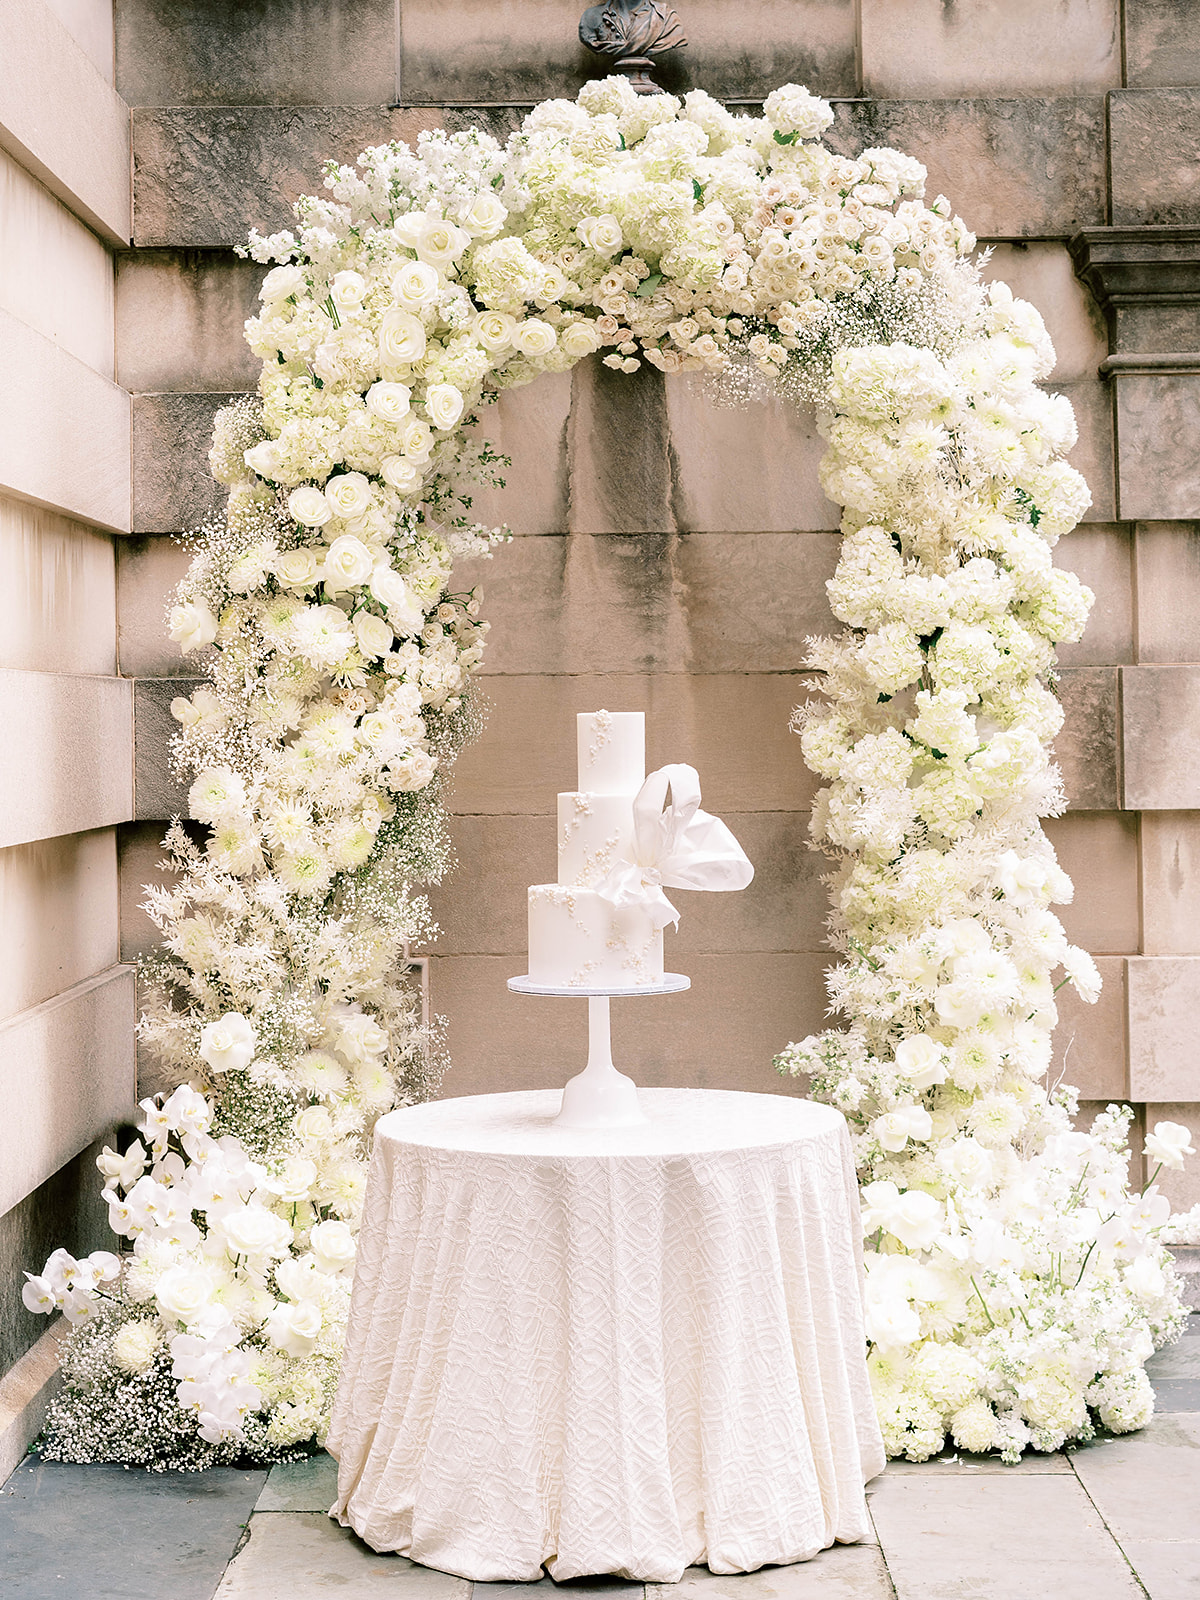 White floral arch with a white royal inspired cake inside